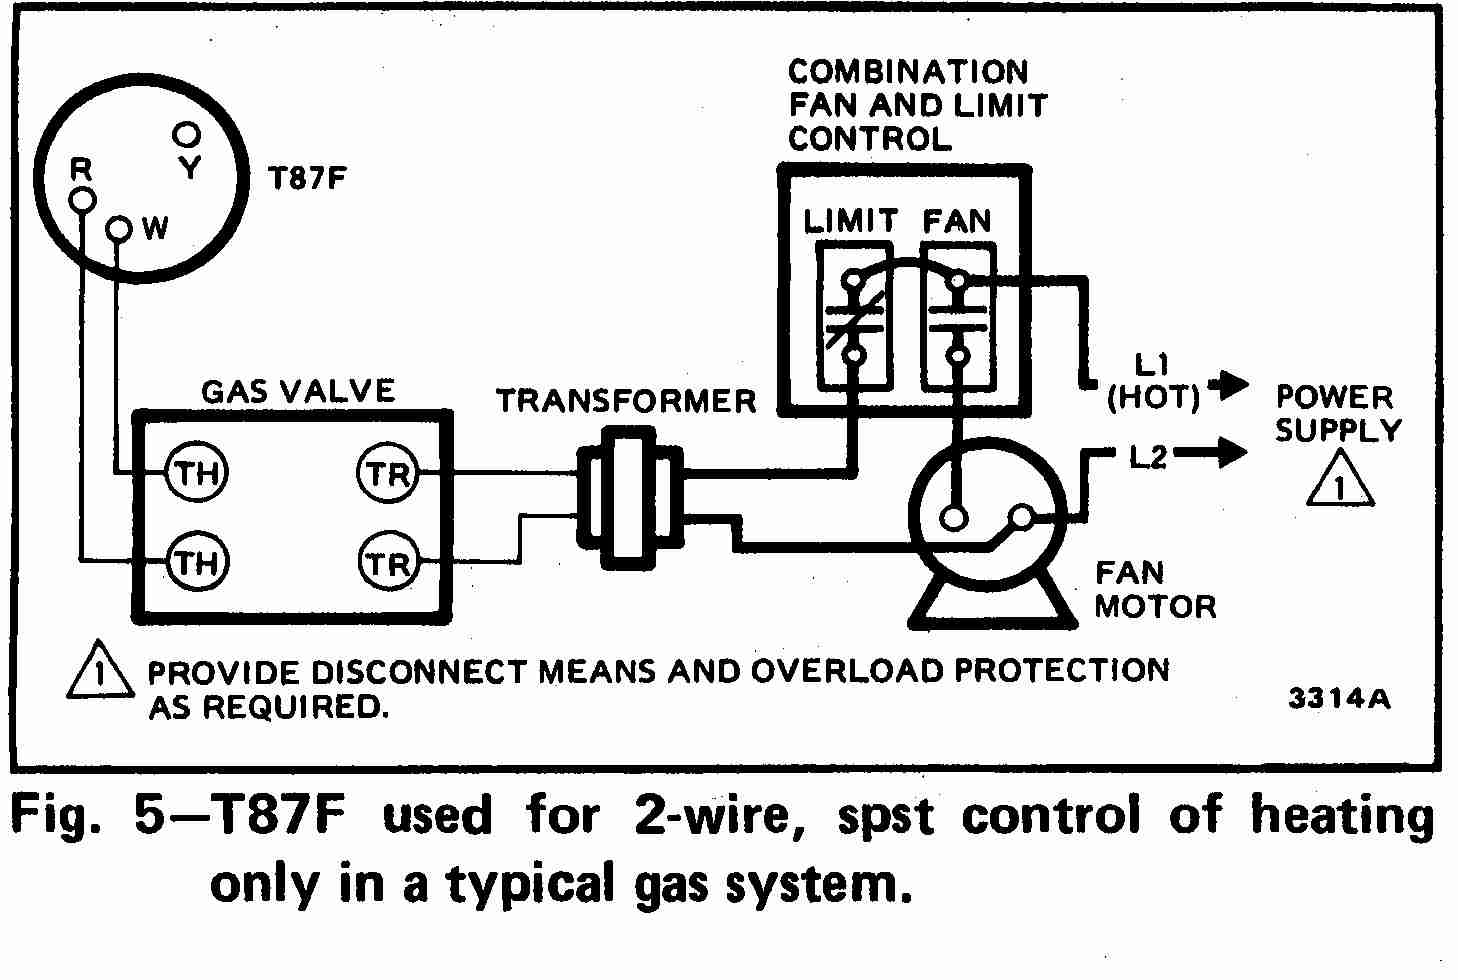 TT_T87F_0002_2Wg_DJF guide to wiring connections for room thermostats ac thermostat wiring diagram at webbmarketing.co